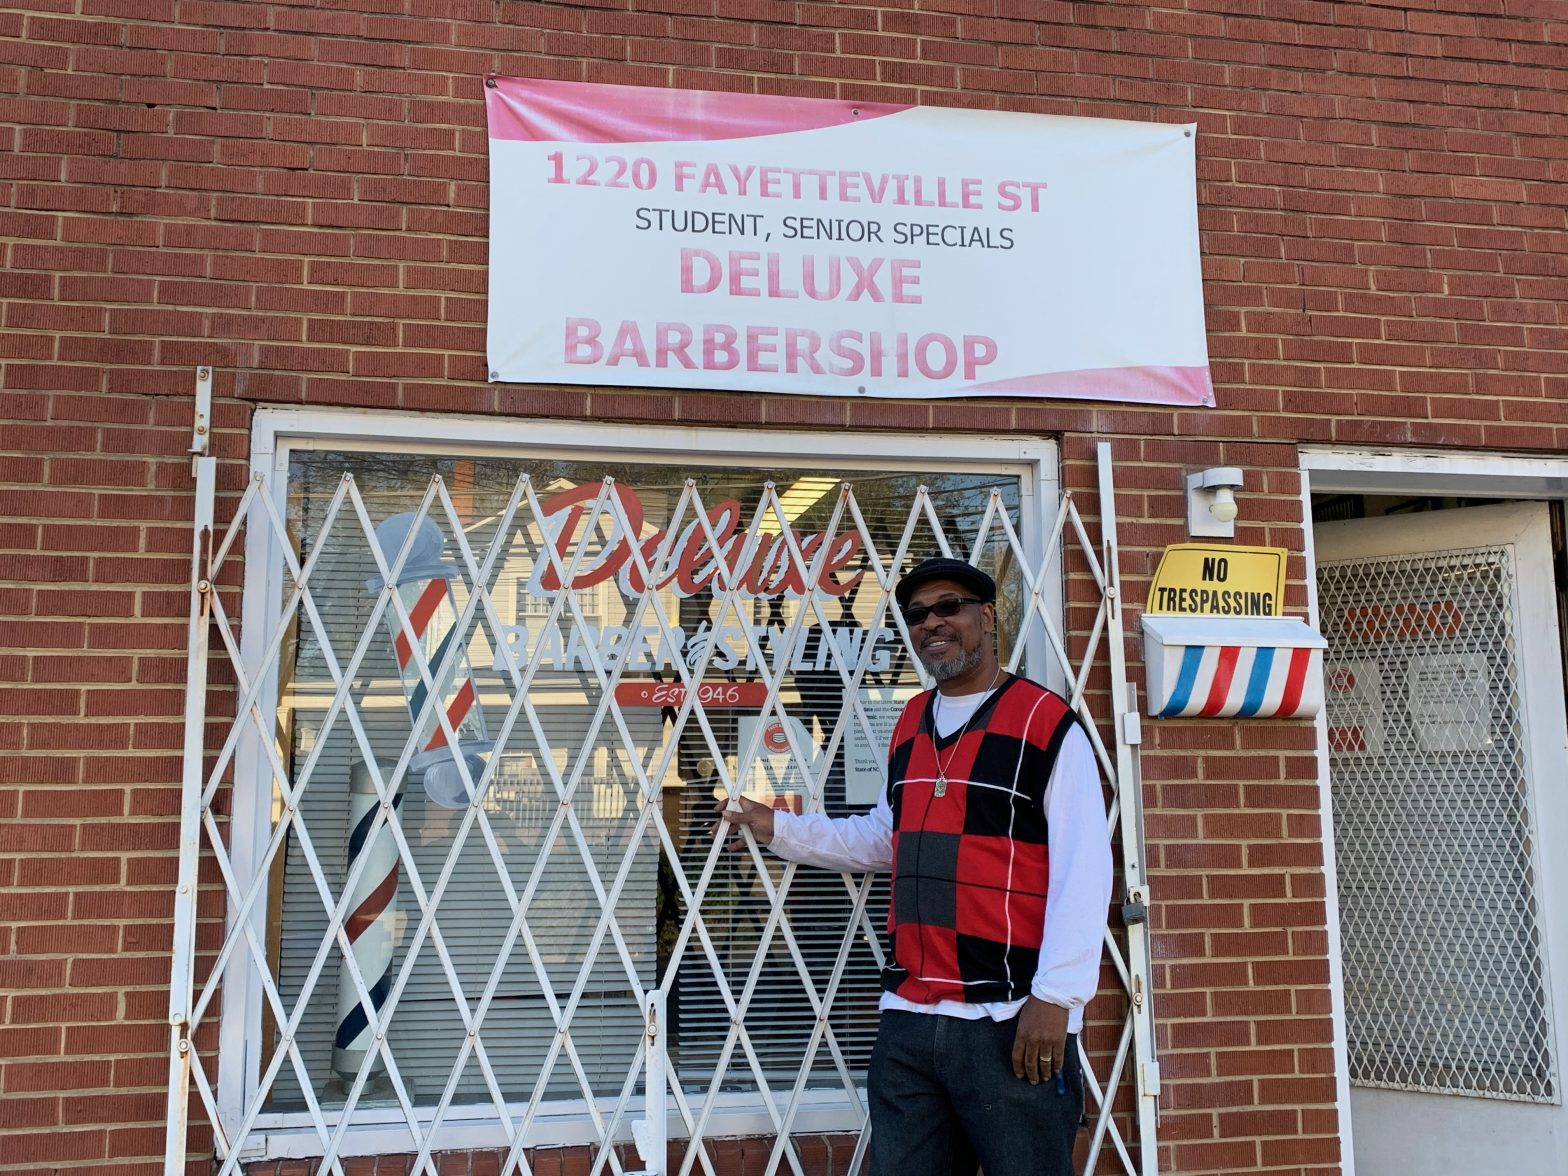 Derrick Green stands proudly in front of the brick building and front window that are home to his barbershop.